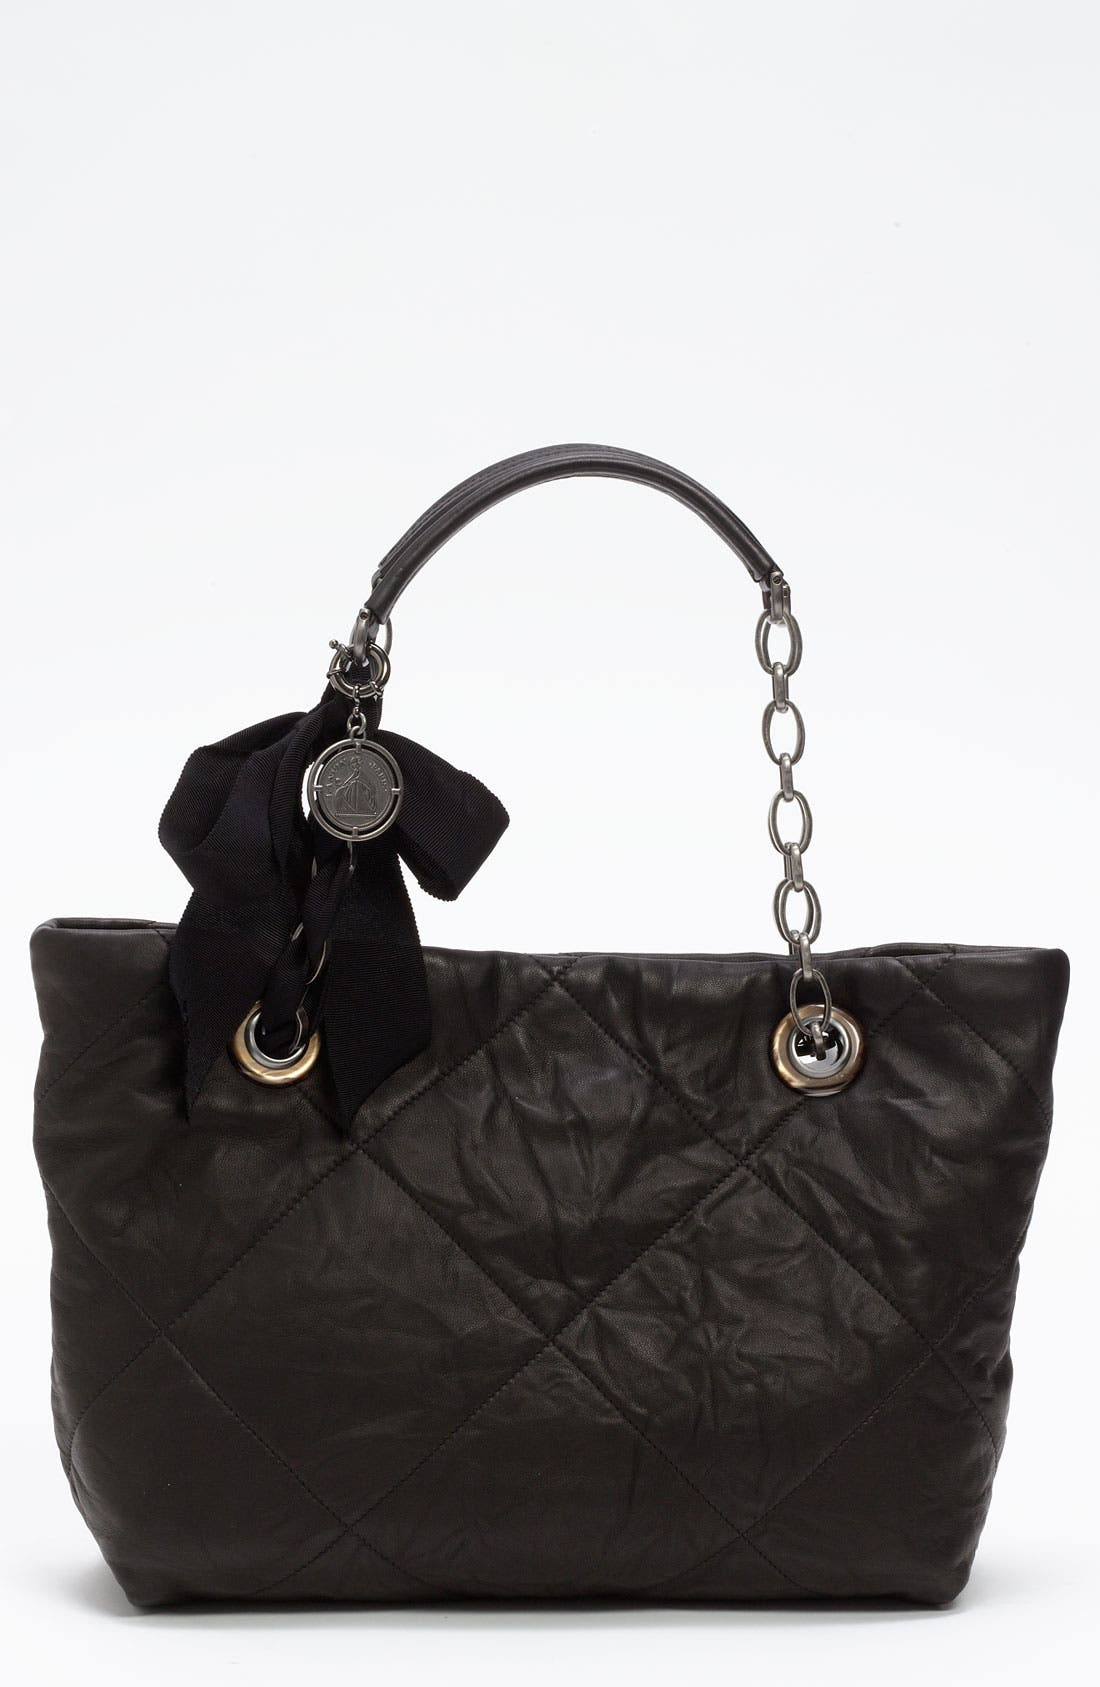 Main Image - Lanvin 'Amalia - Small' Leather Tote